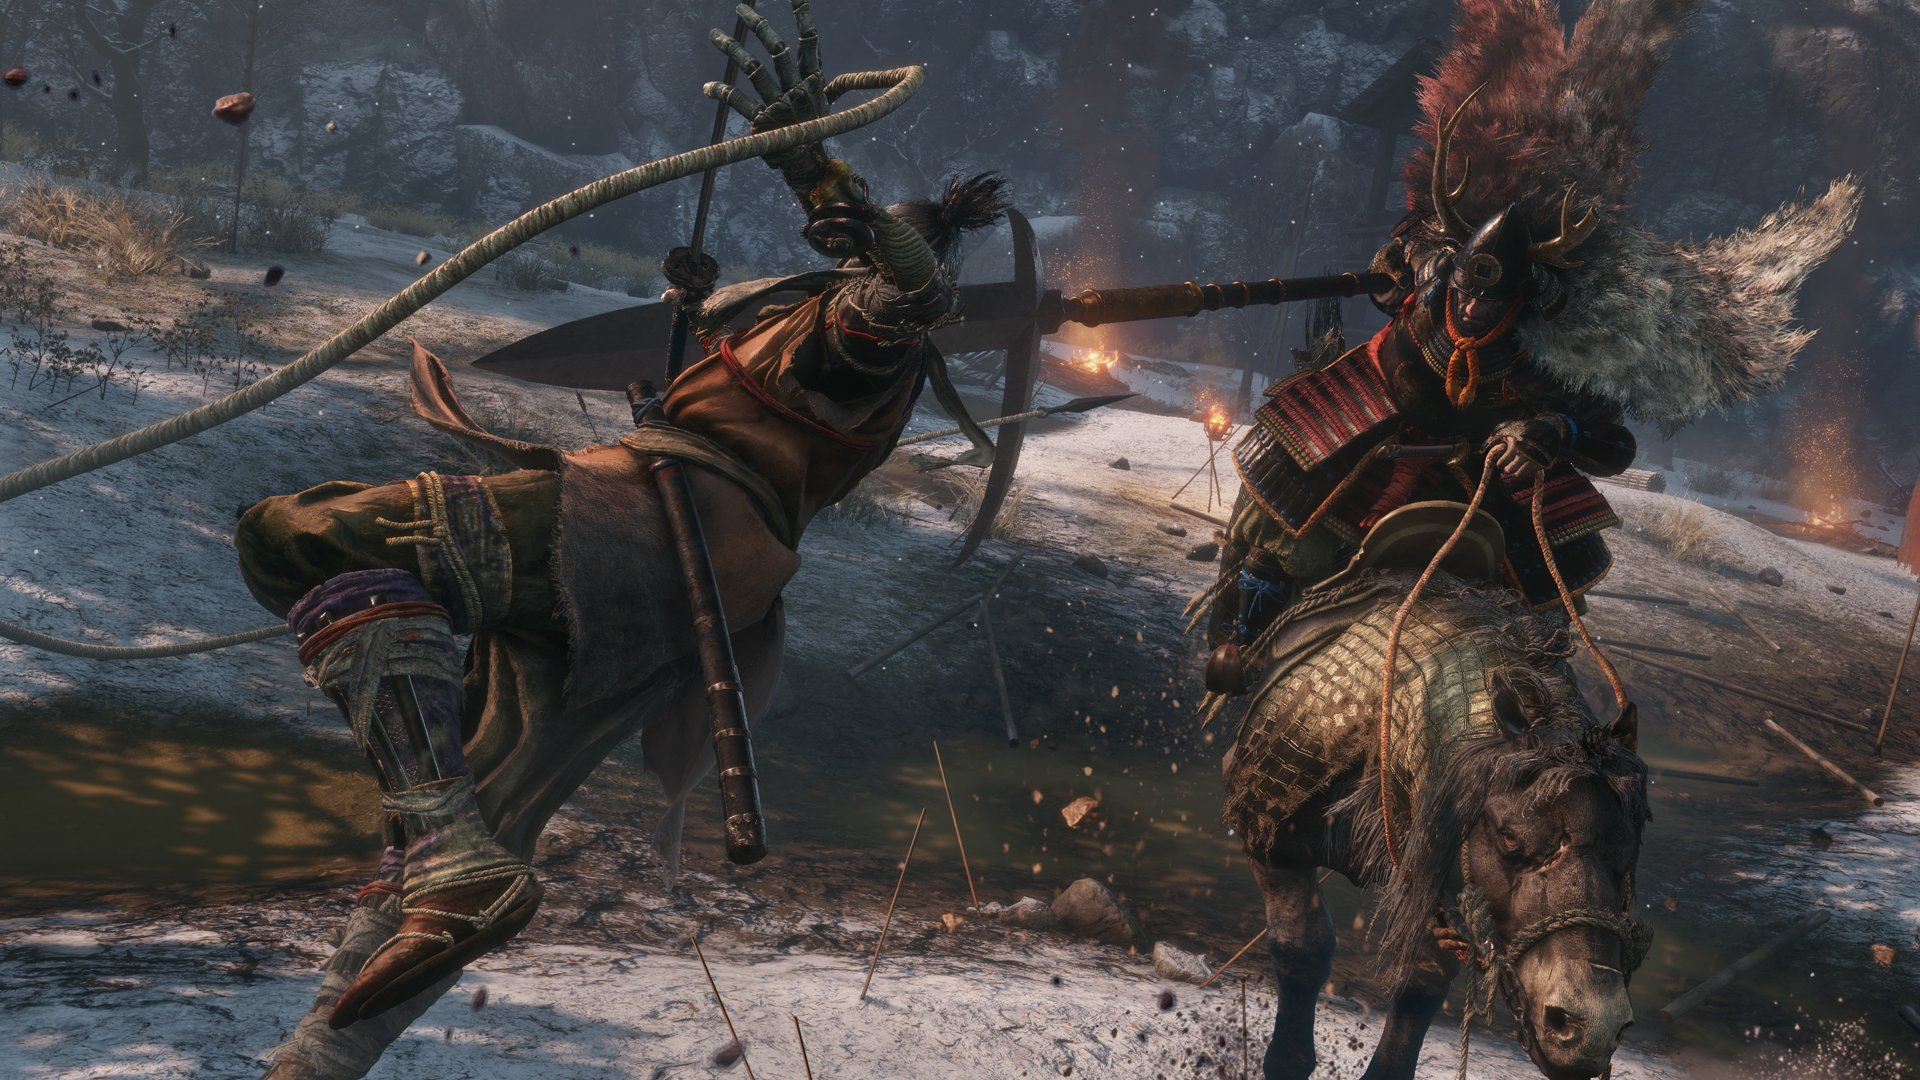 After taking damage, you can heal yourself with your Healing Gourd or through consumable items like Medicinal Pellets in Sekiro: Shadows Die Twice.